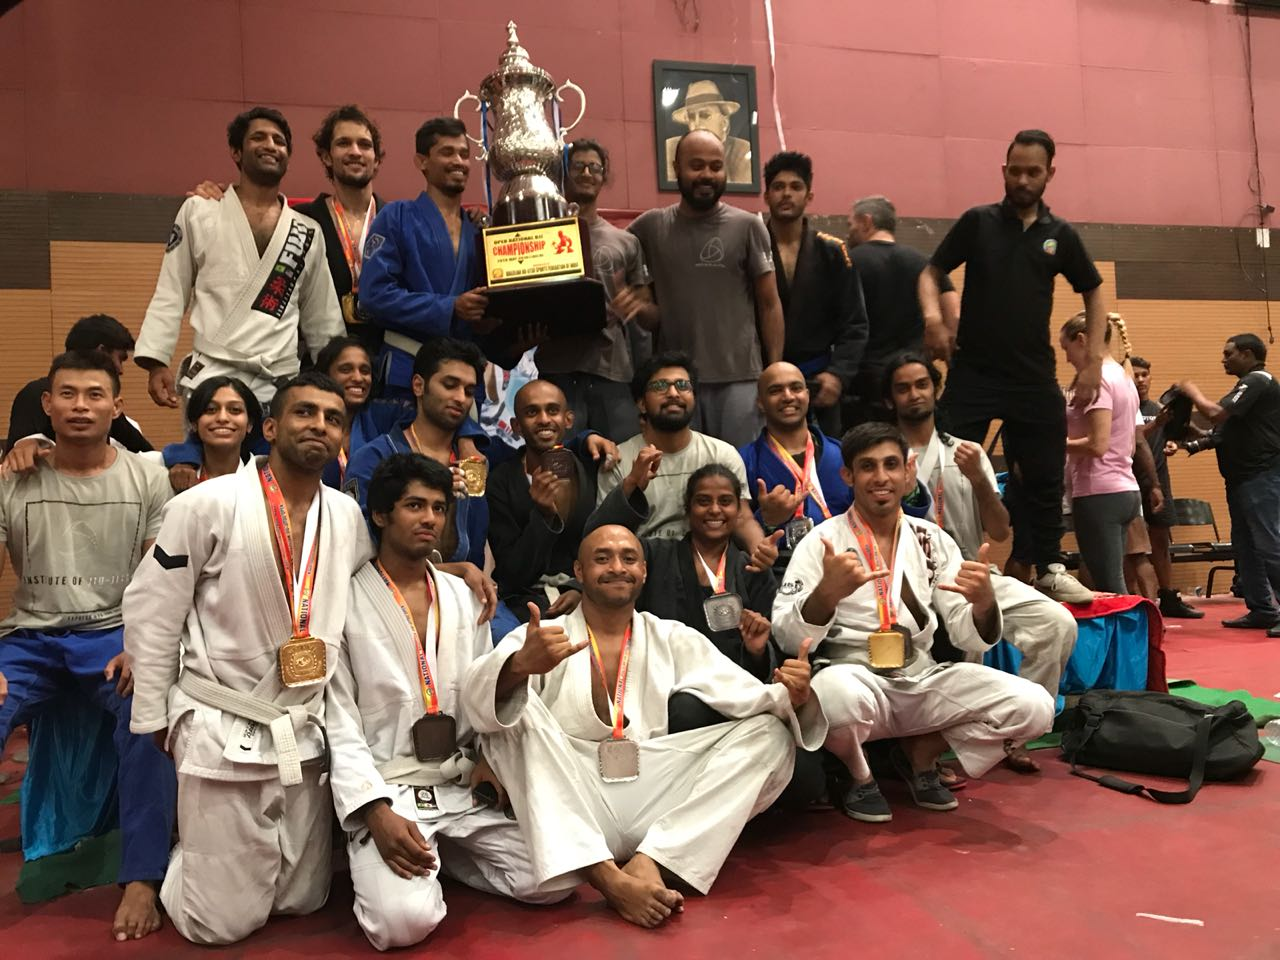 BJJ: Institute of Jiu-Jitsu Bangalore shines yet again, this time at the BJJ Nationals in Delhi - BJJ